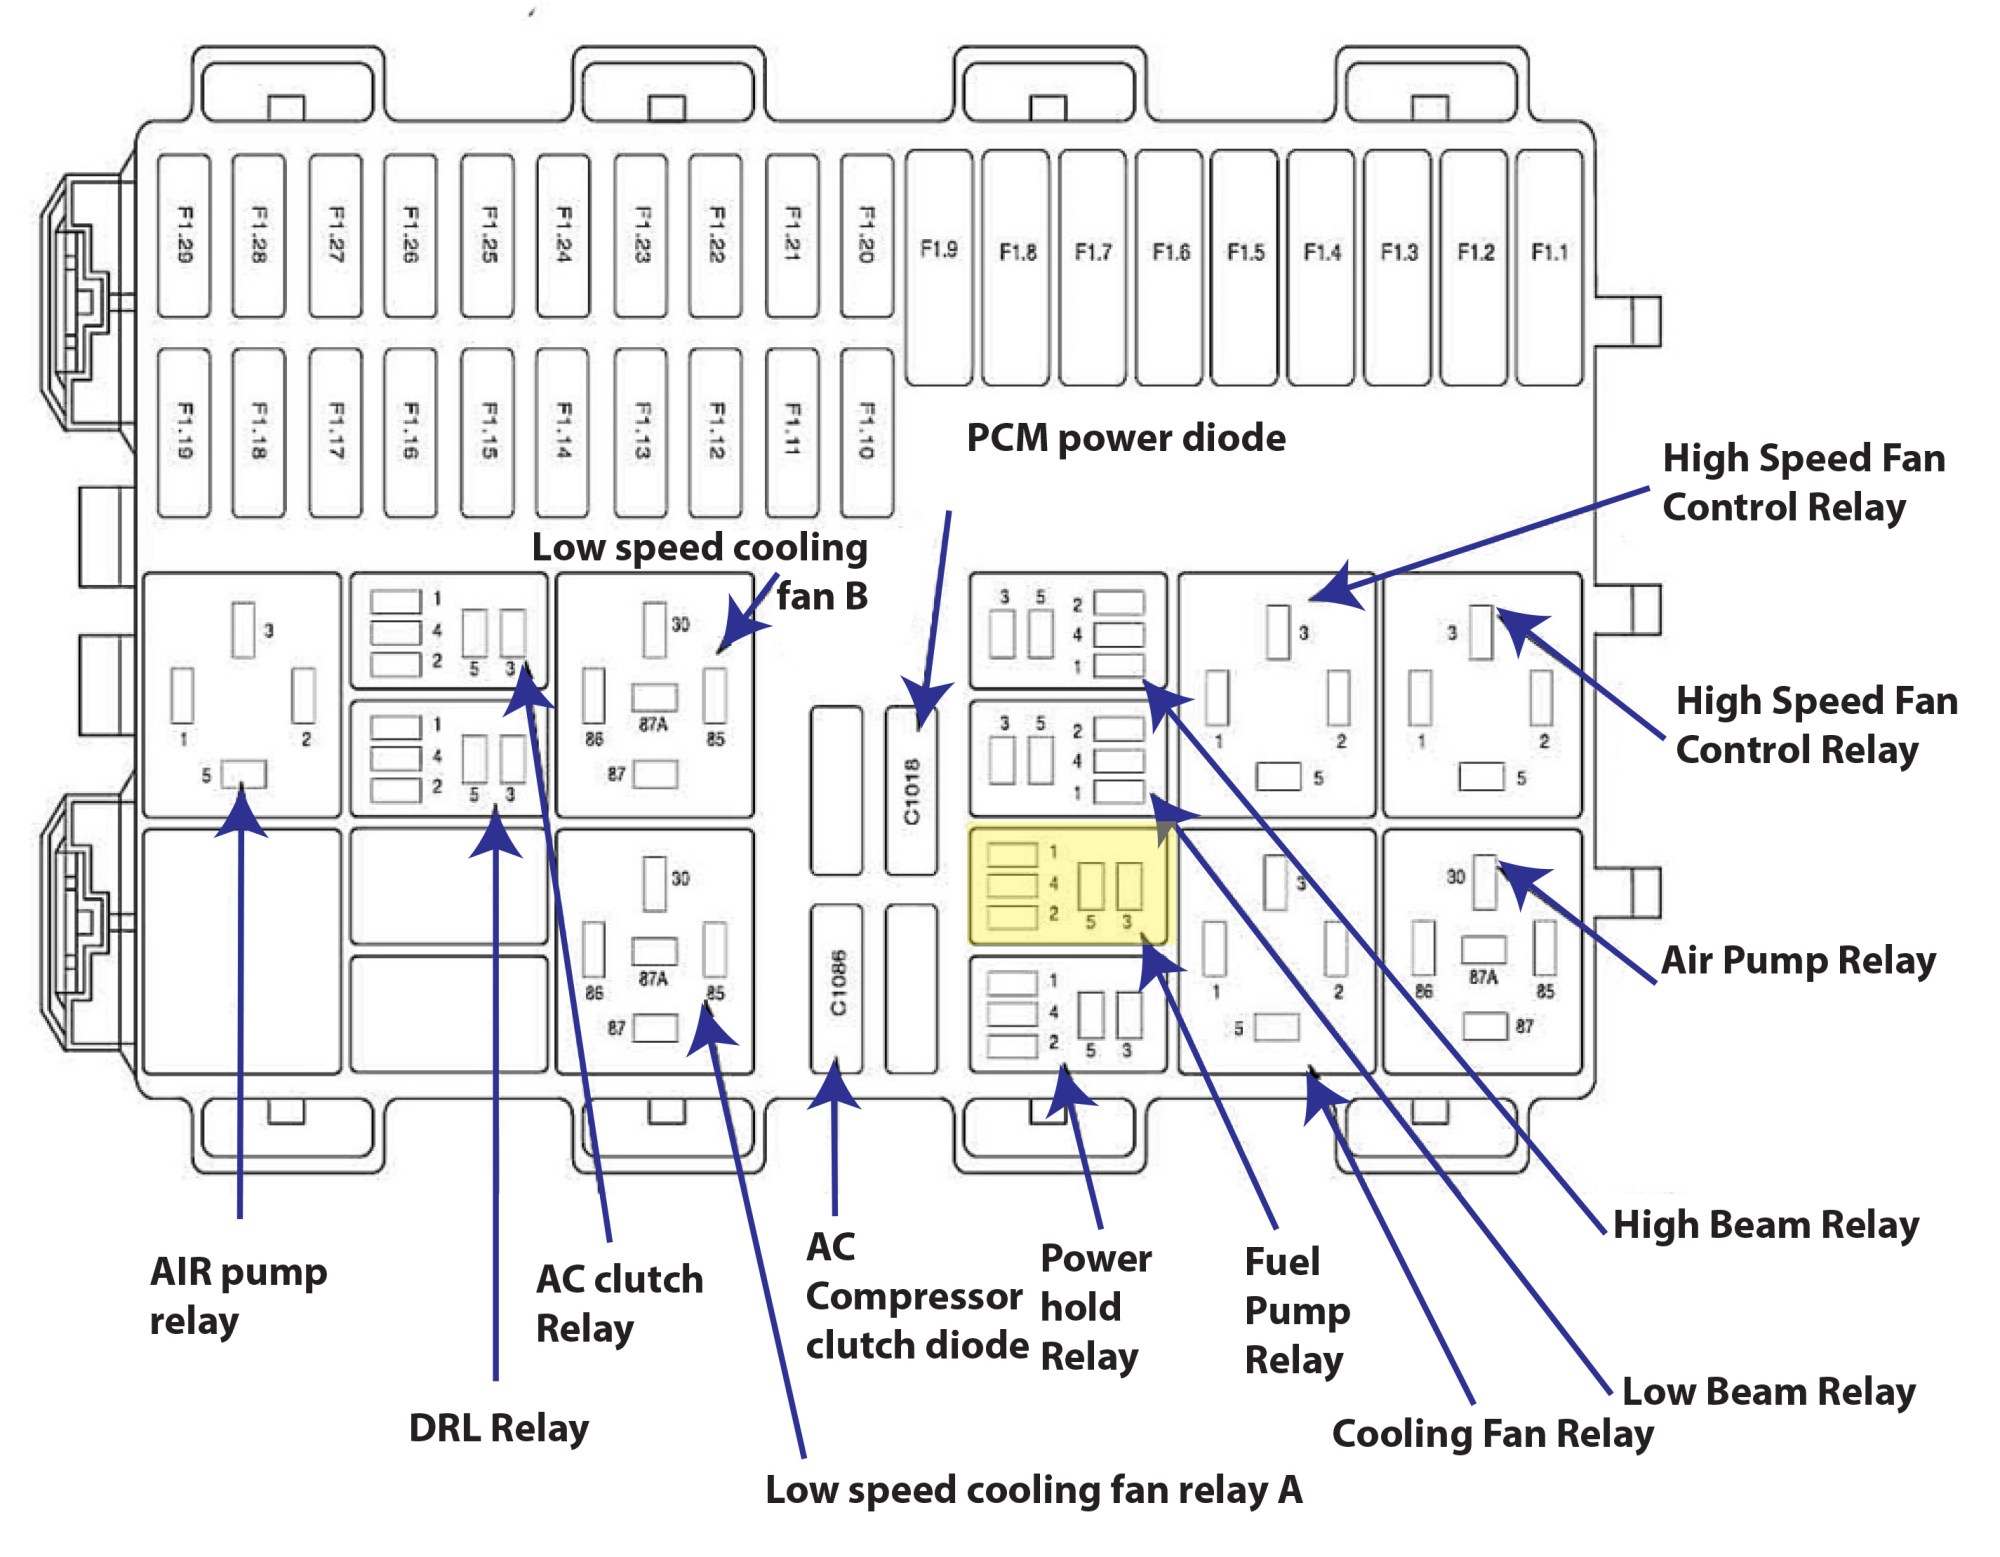 hight resolution of 2006 tundra fuse diagram wiring diagram2006 tundra fuse diagram